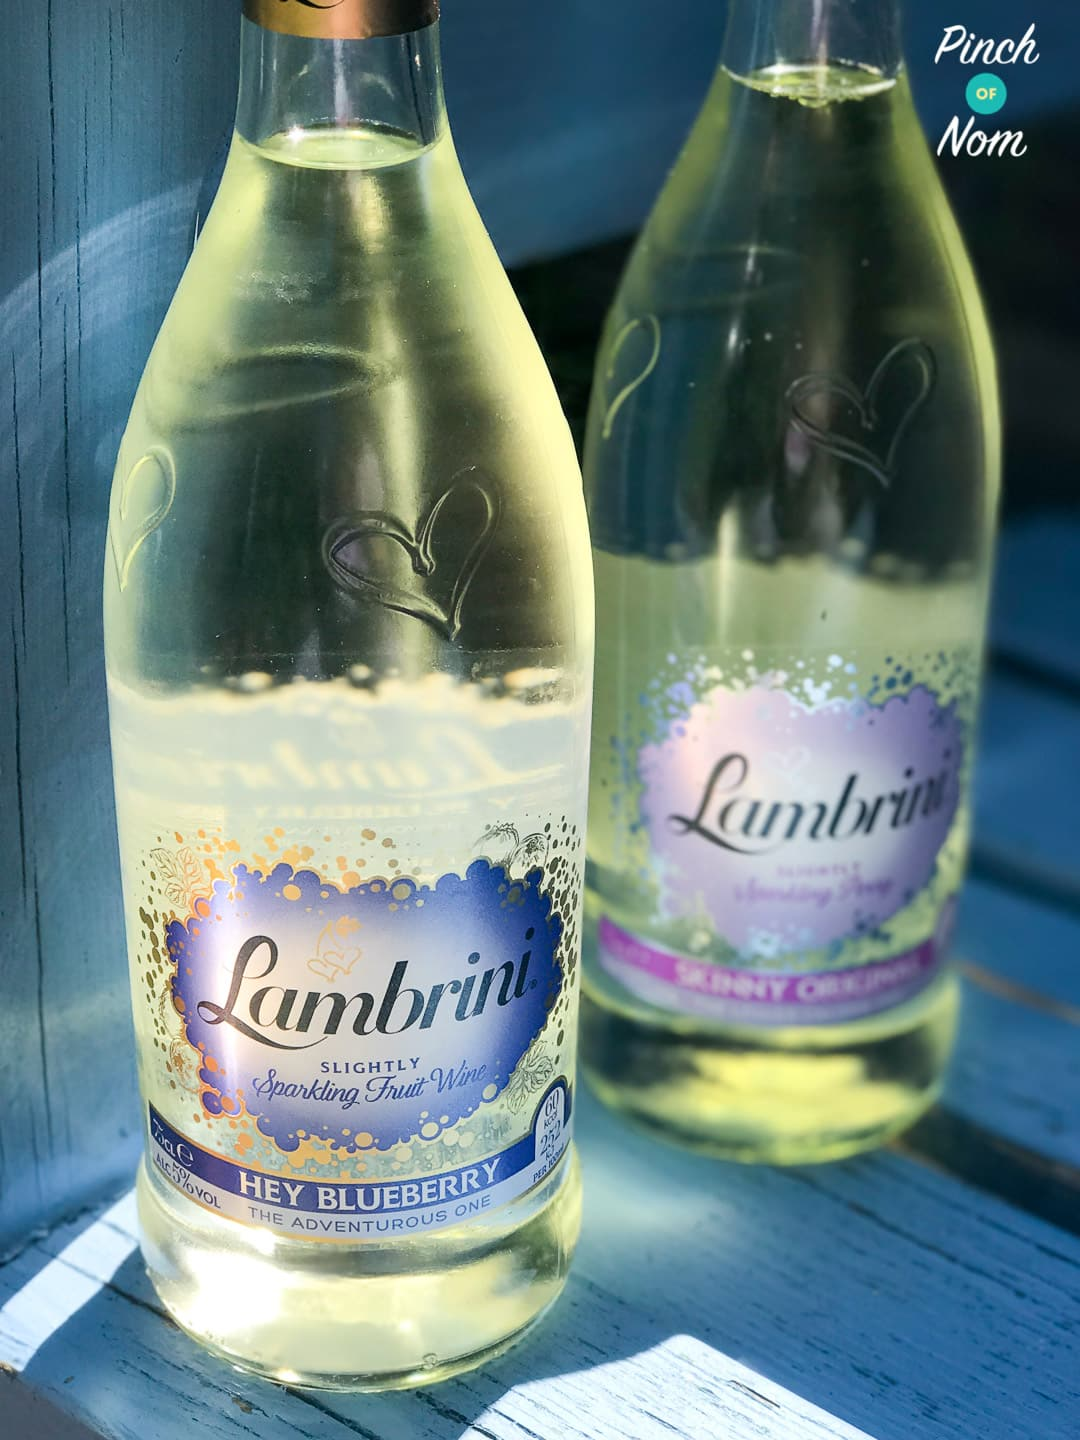 Skinny Original & Hey Blueberry Lambrini Review | Slimming World